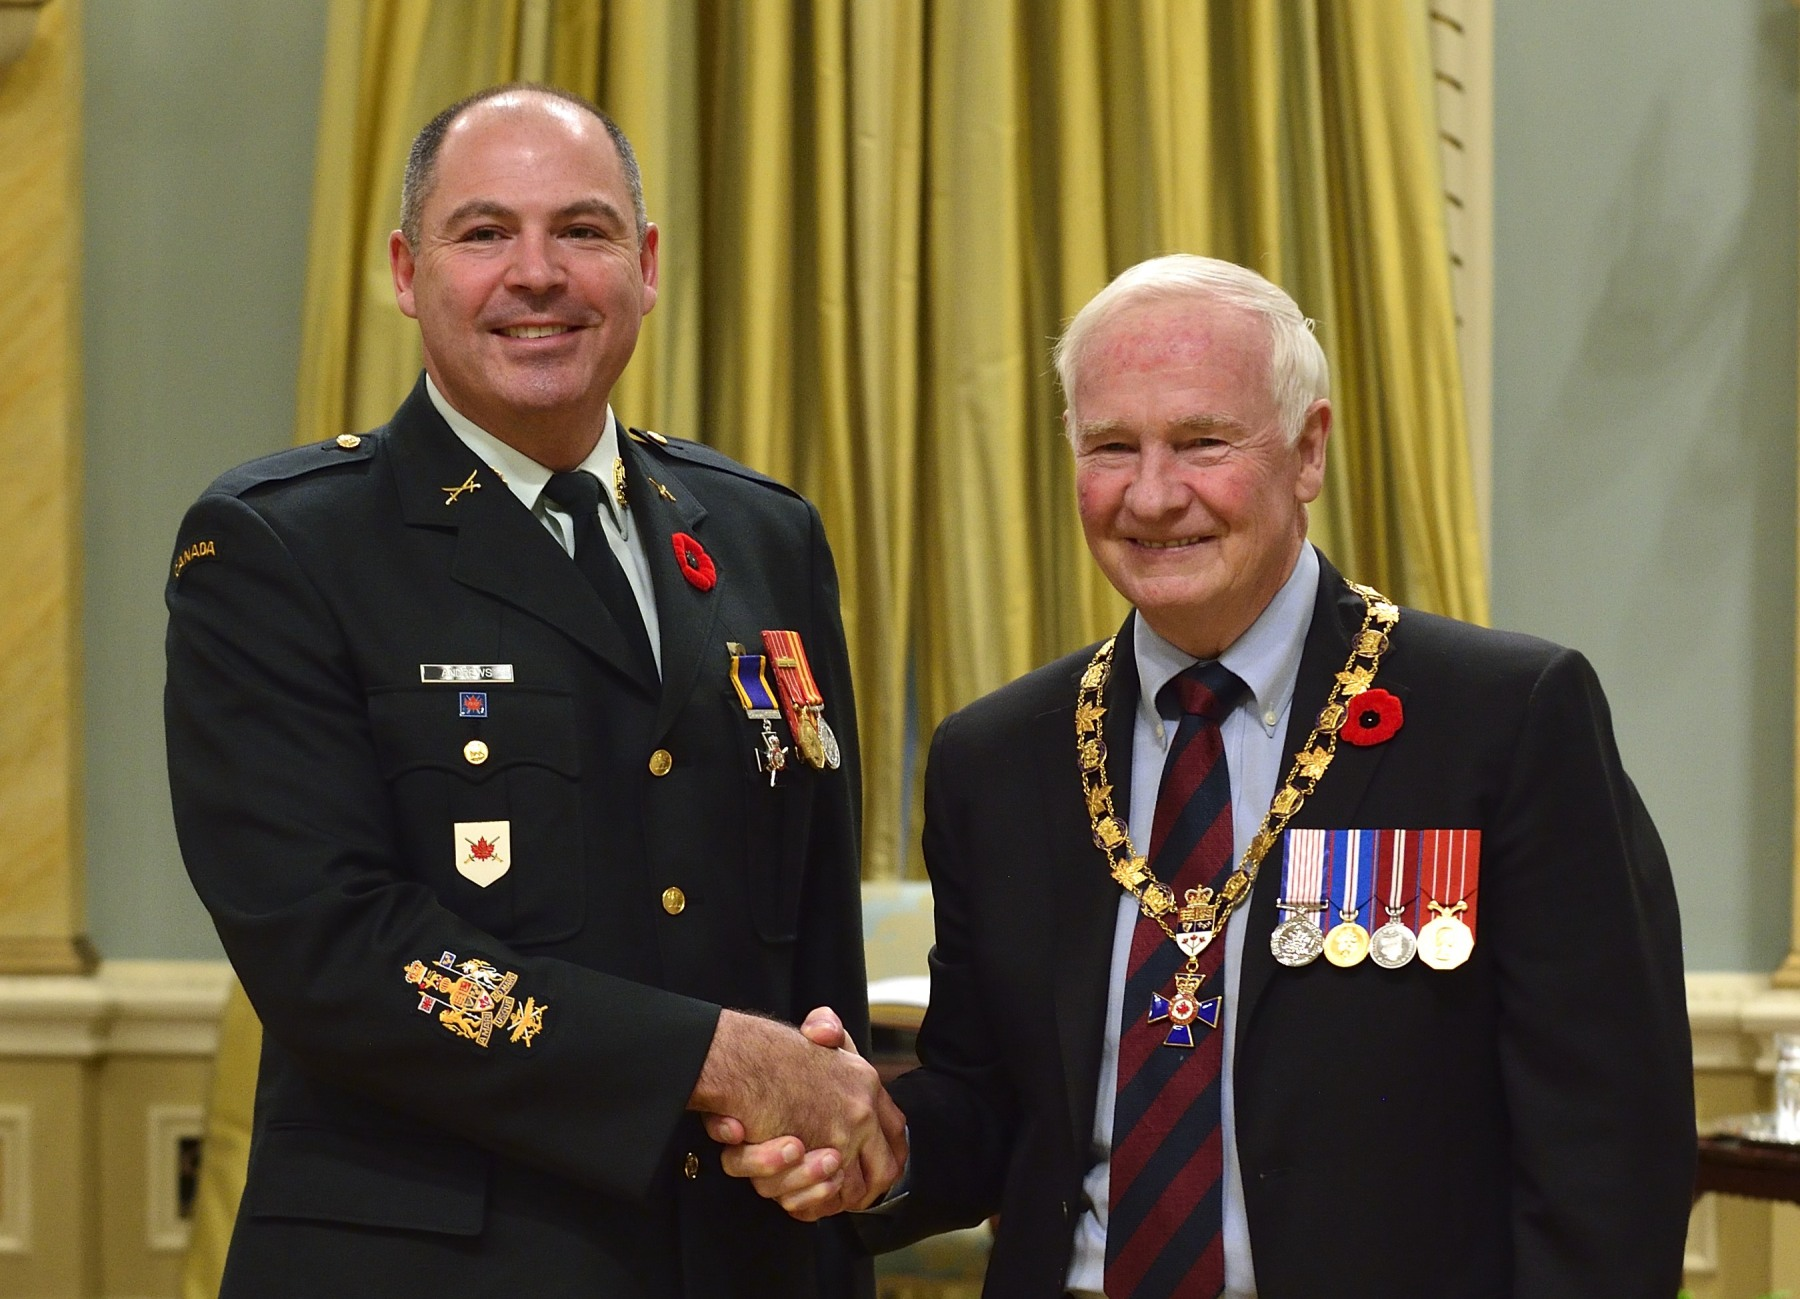 His Excellency presented the Order of Military Merit at the Member level (M.M.M.) to Chief Warrant Officer Peter Andrews, M.M.M., C.D., Land Force Atlantic Area Headquarters, Halifax, N.S.